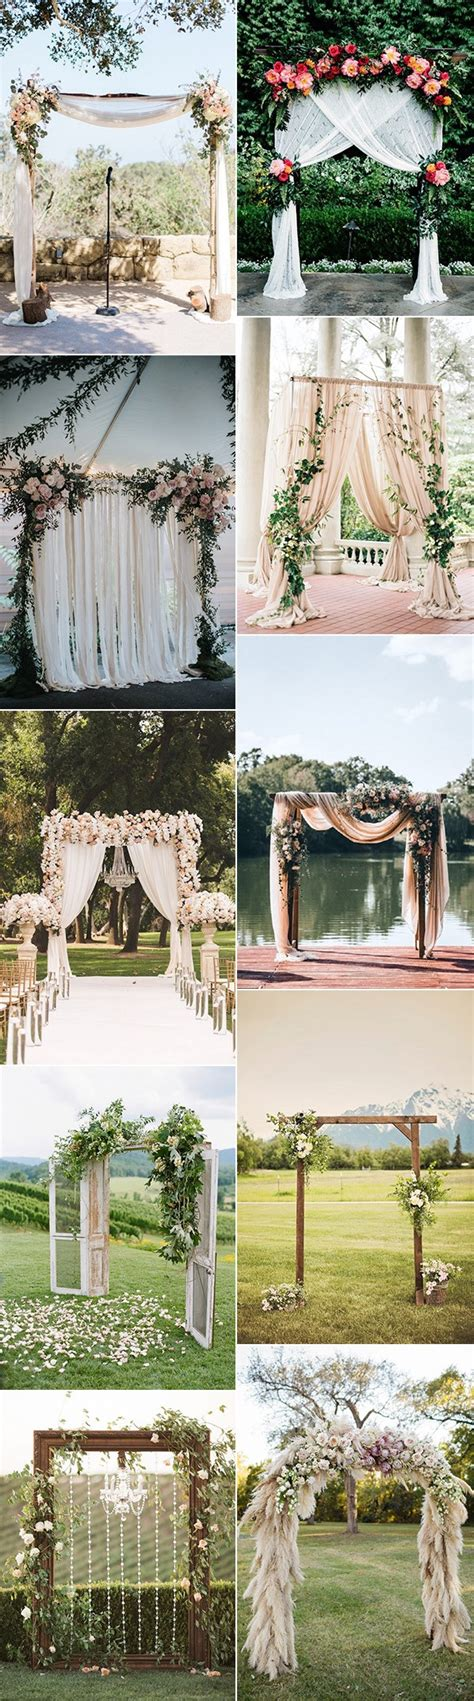 10 Stunning Wedding Arch Ideas for Your Ceremony